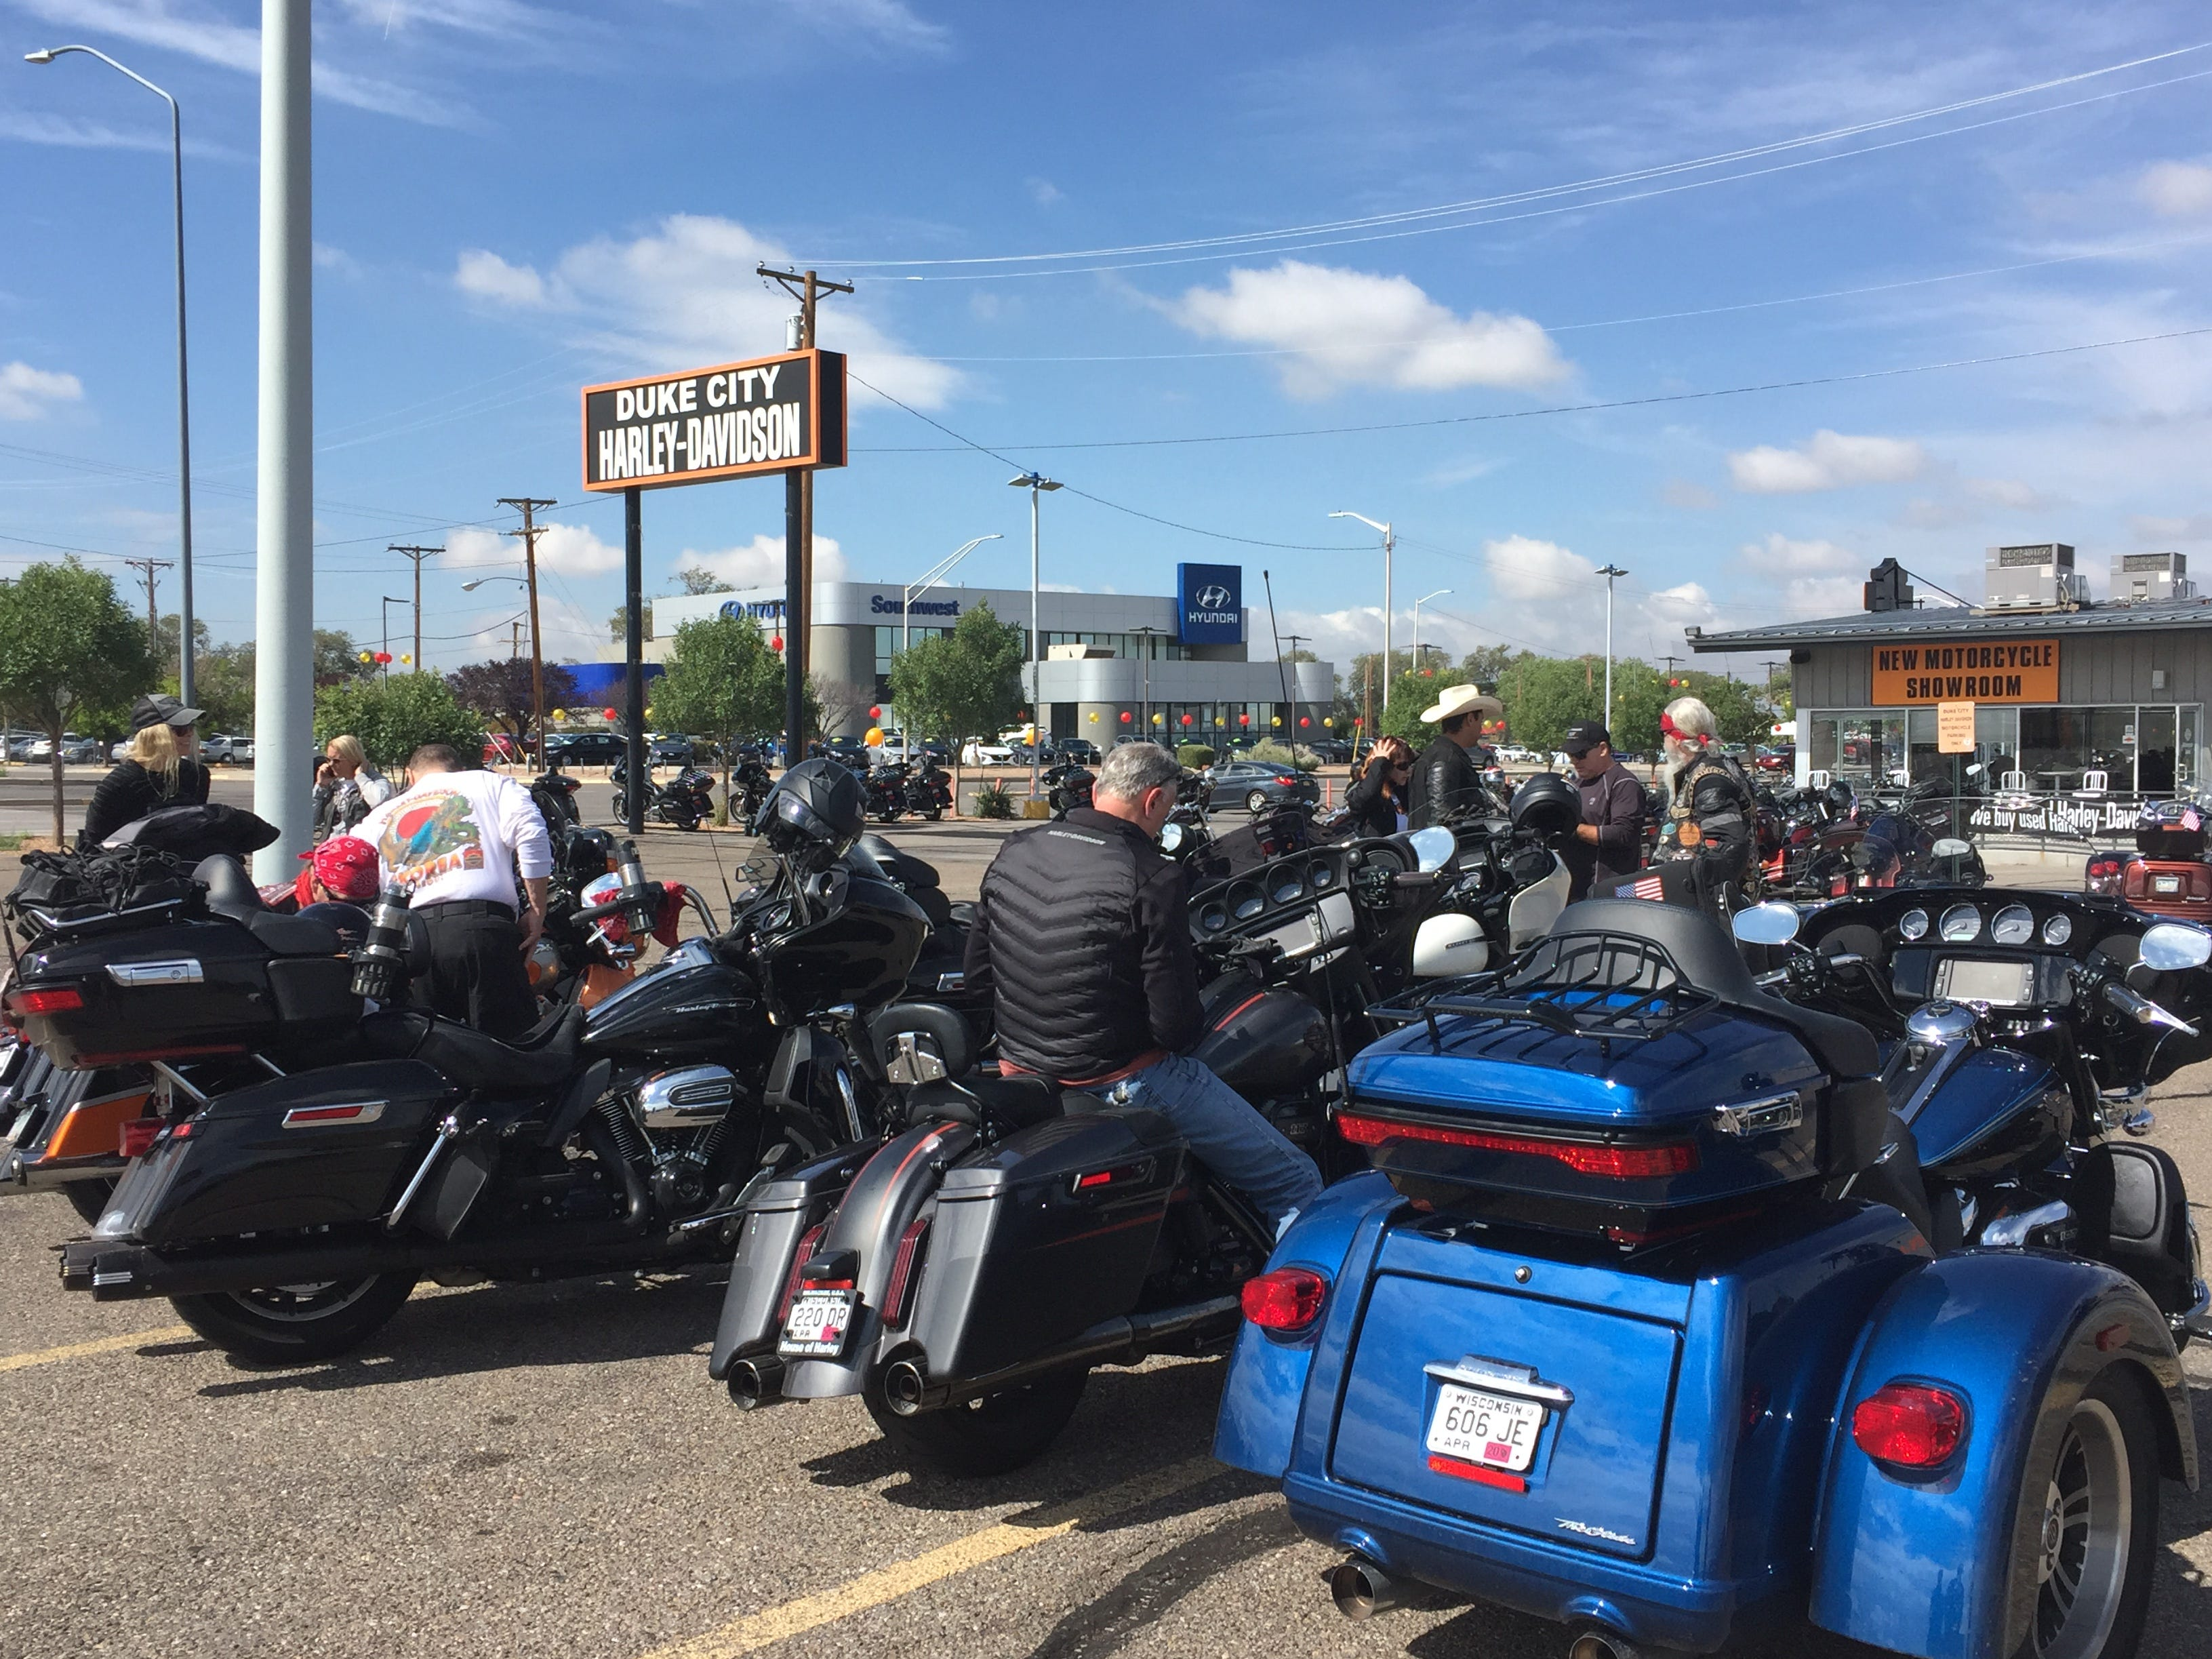 Riders stopped by Duke City Harley-Davidson in Albuquerque on Aug. 23.